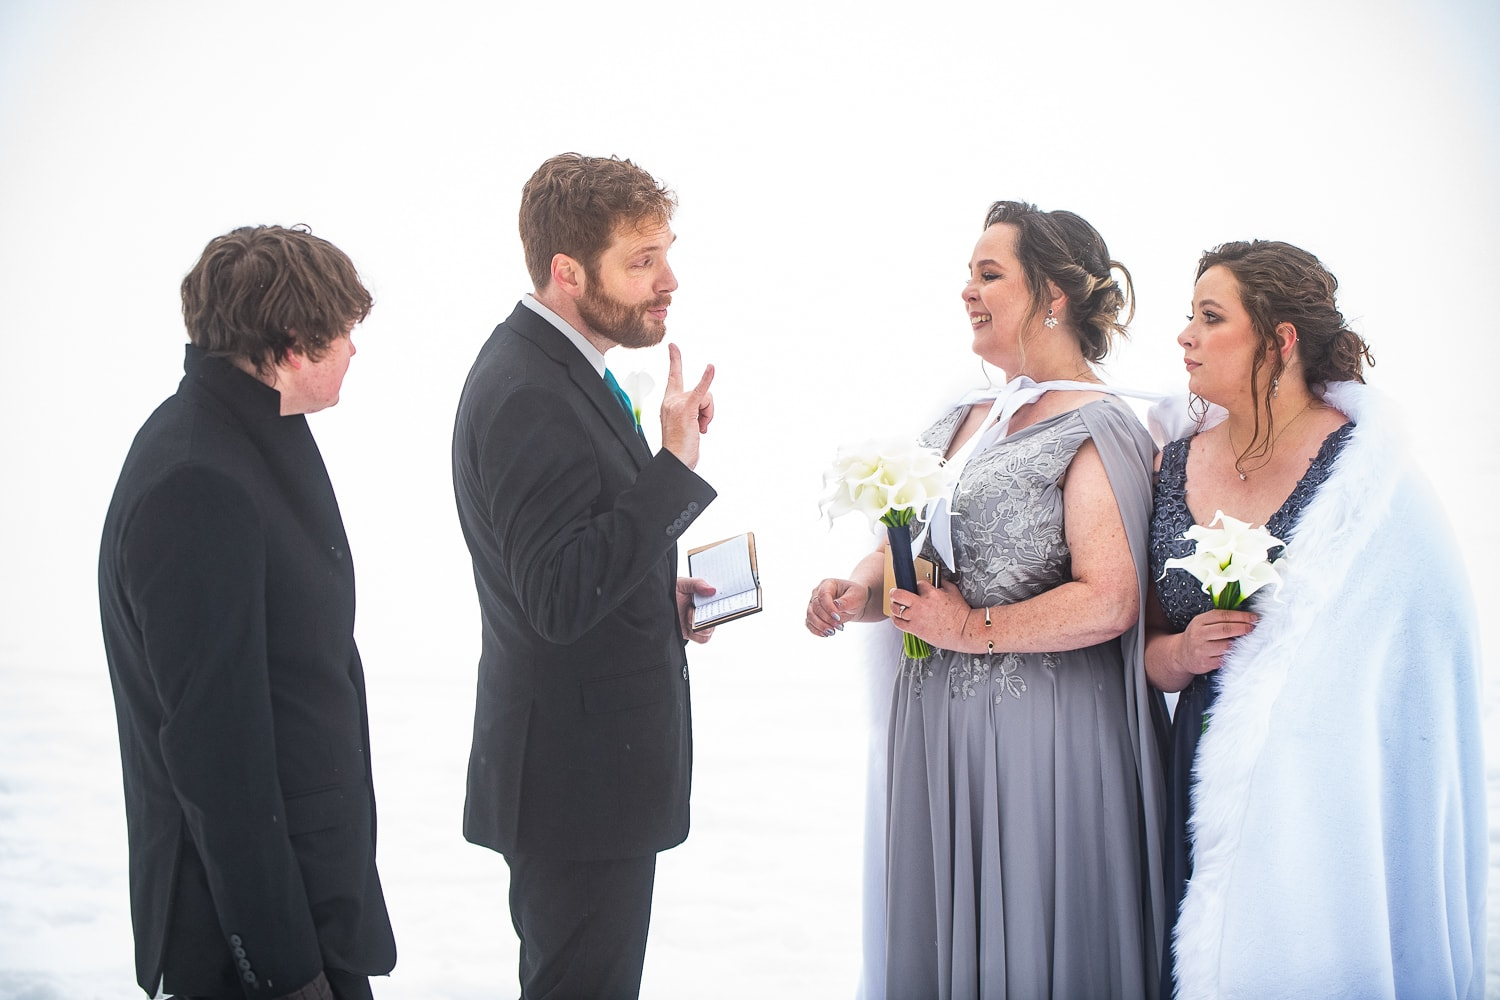 """A groom says """"I love you."""" in sign language as part of his elopement vows."""